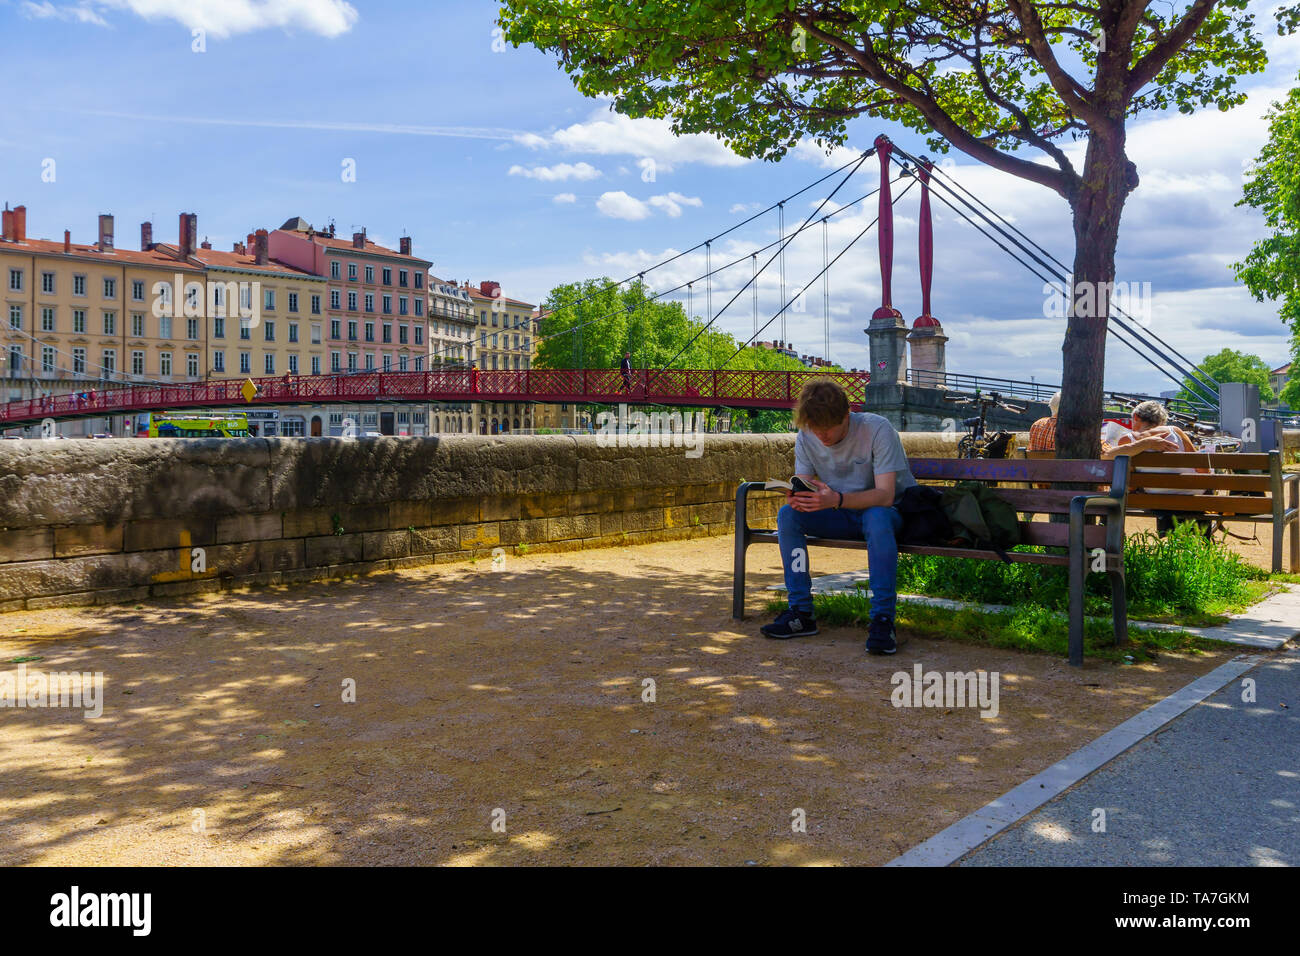 Lyon, France - May 10, 2019: The Saone River, and Saint-Gorges bridge, with locals and visitors, in Old Lyon, France - Stock Image